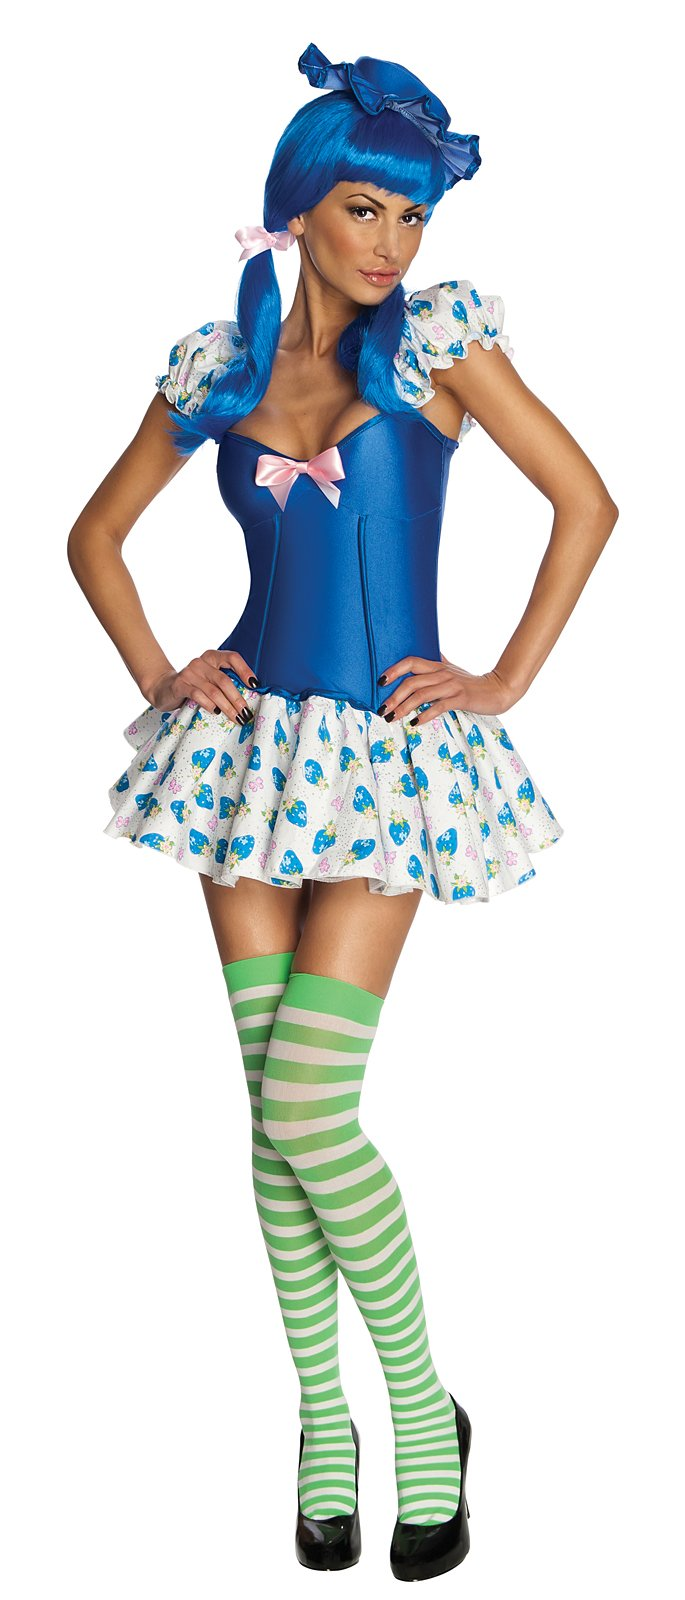 Strawberry Shortcake - Blueberry Muffin Adult Costume